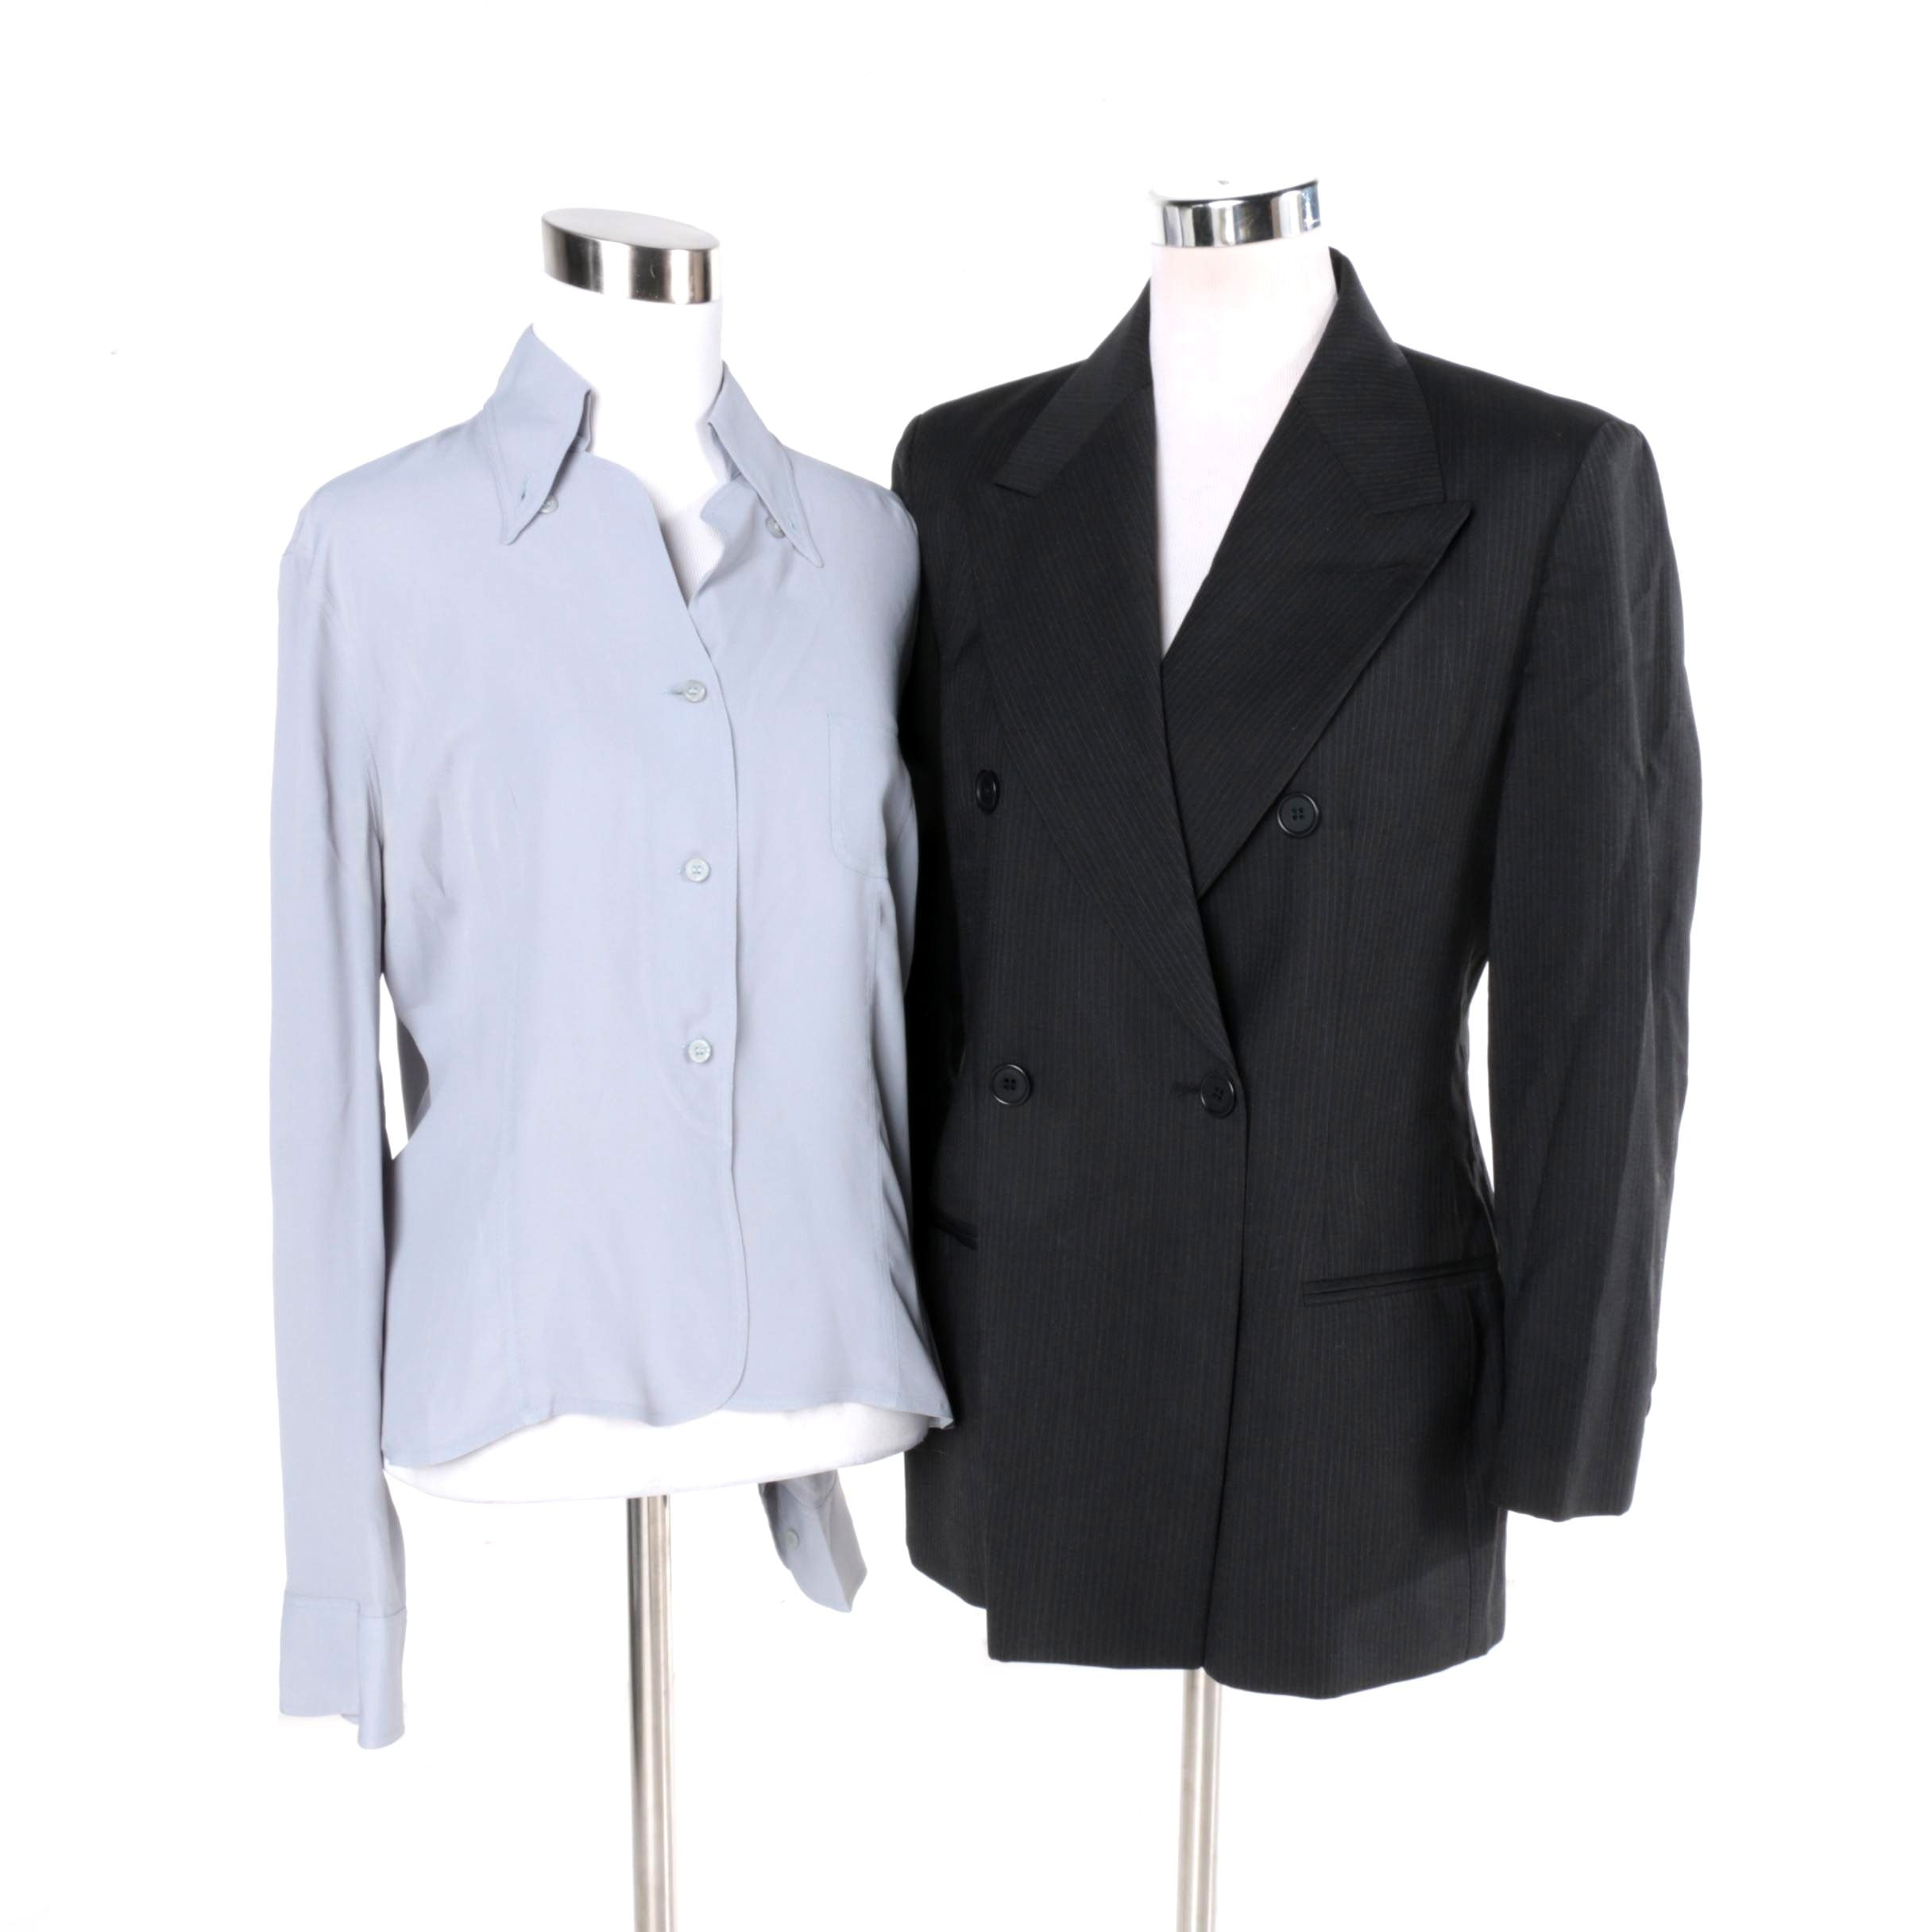 Women's Emporio Armani Blouse and Jacket